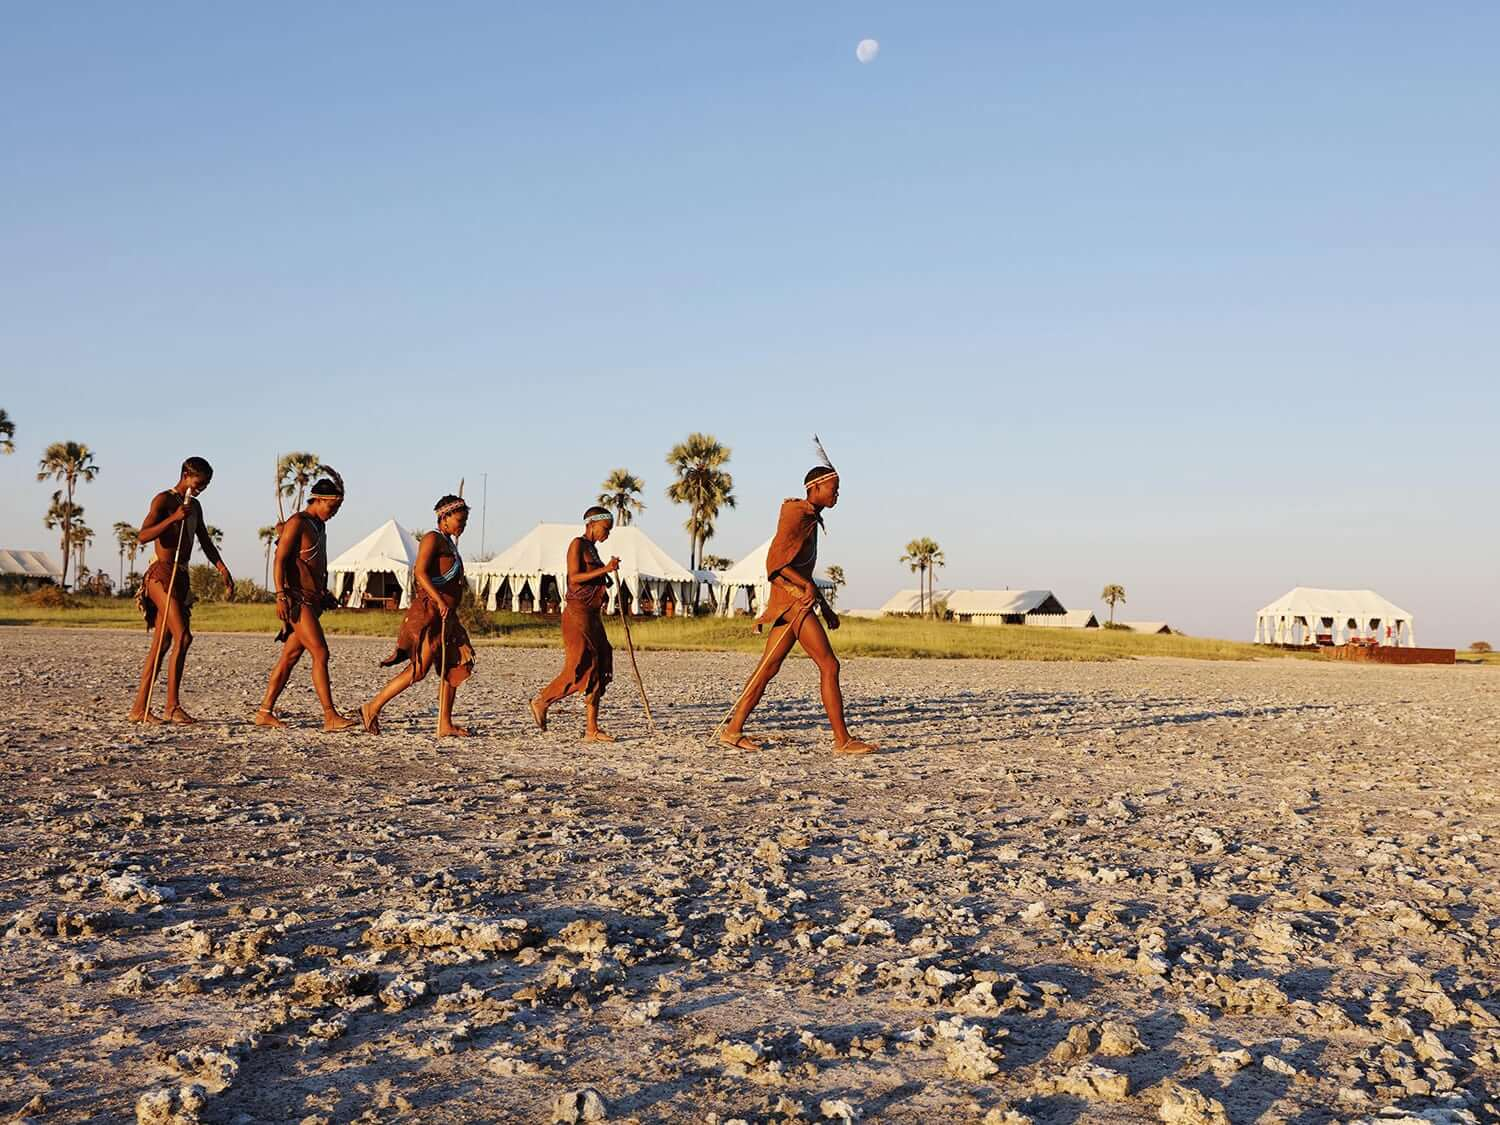 San tribespeople walking across sand in Botswana. Photo by Elsa Young.